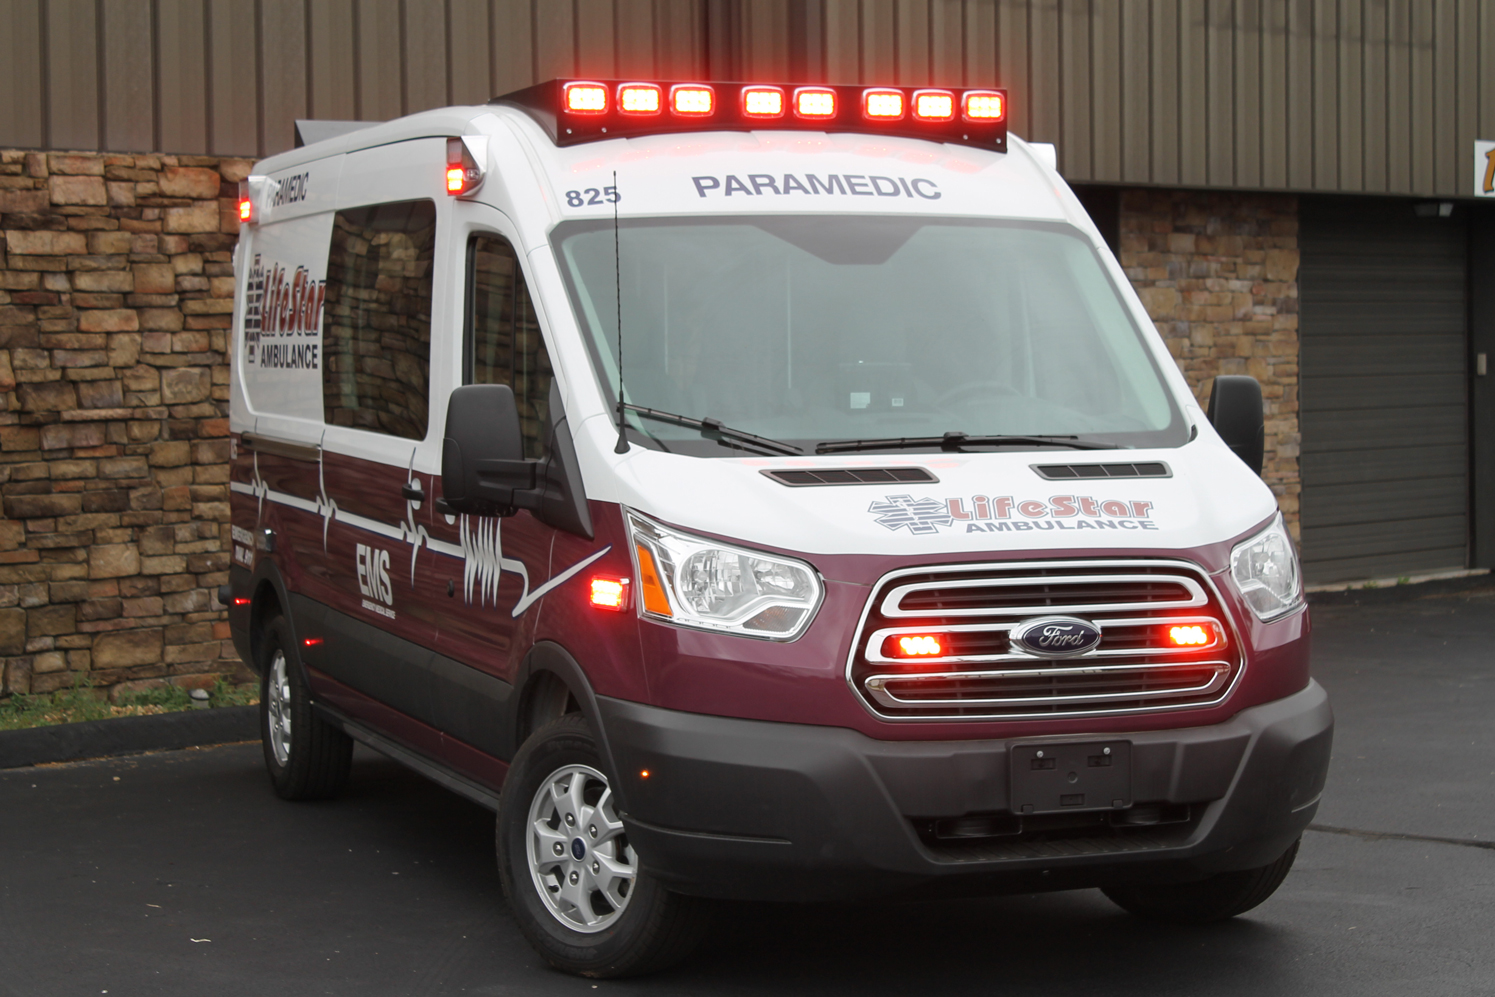 Illuminated lights on LifeStar Type II Ambulance